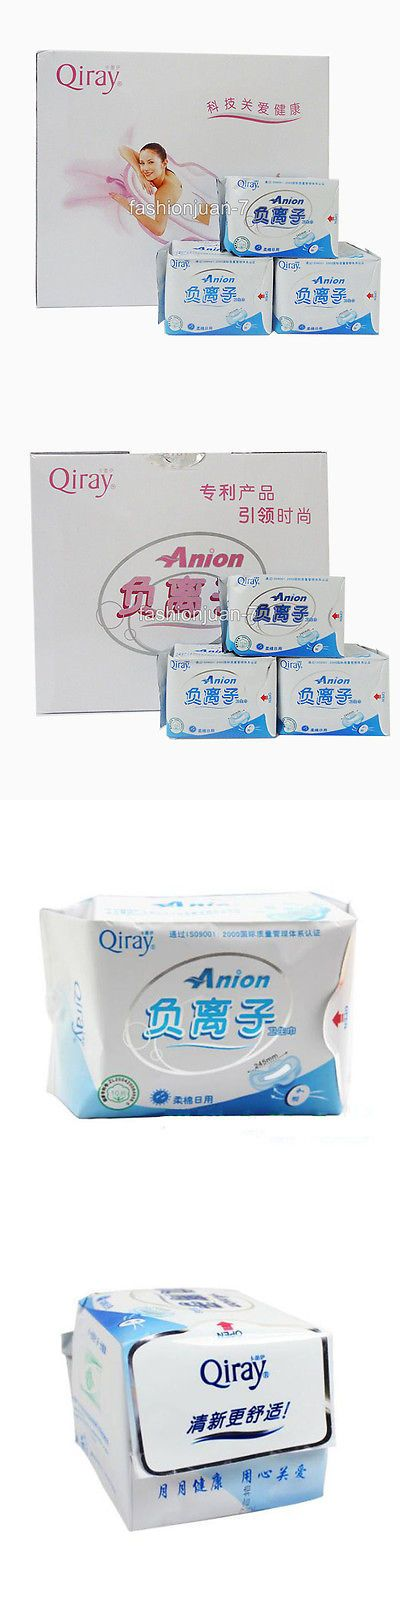 Sanitary Napkins: 19 Packages Winalite Qiray Anion Sanitary Napkins No Fluorescent Agent Day Liner BUY IT NOW ONLY: $75.85